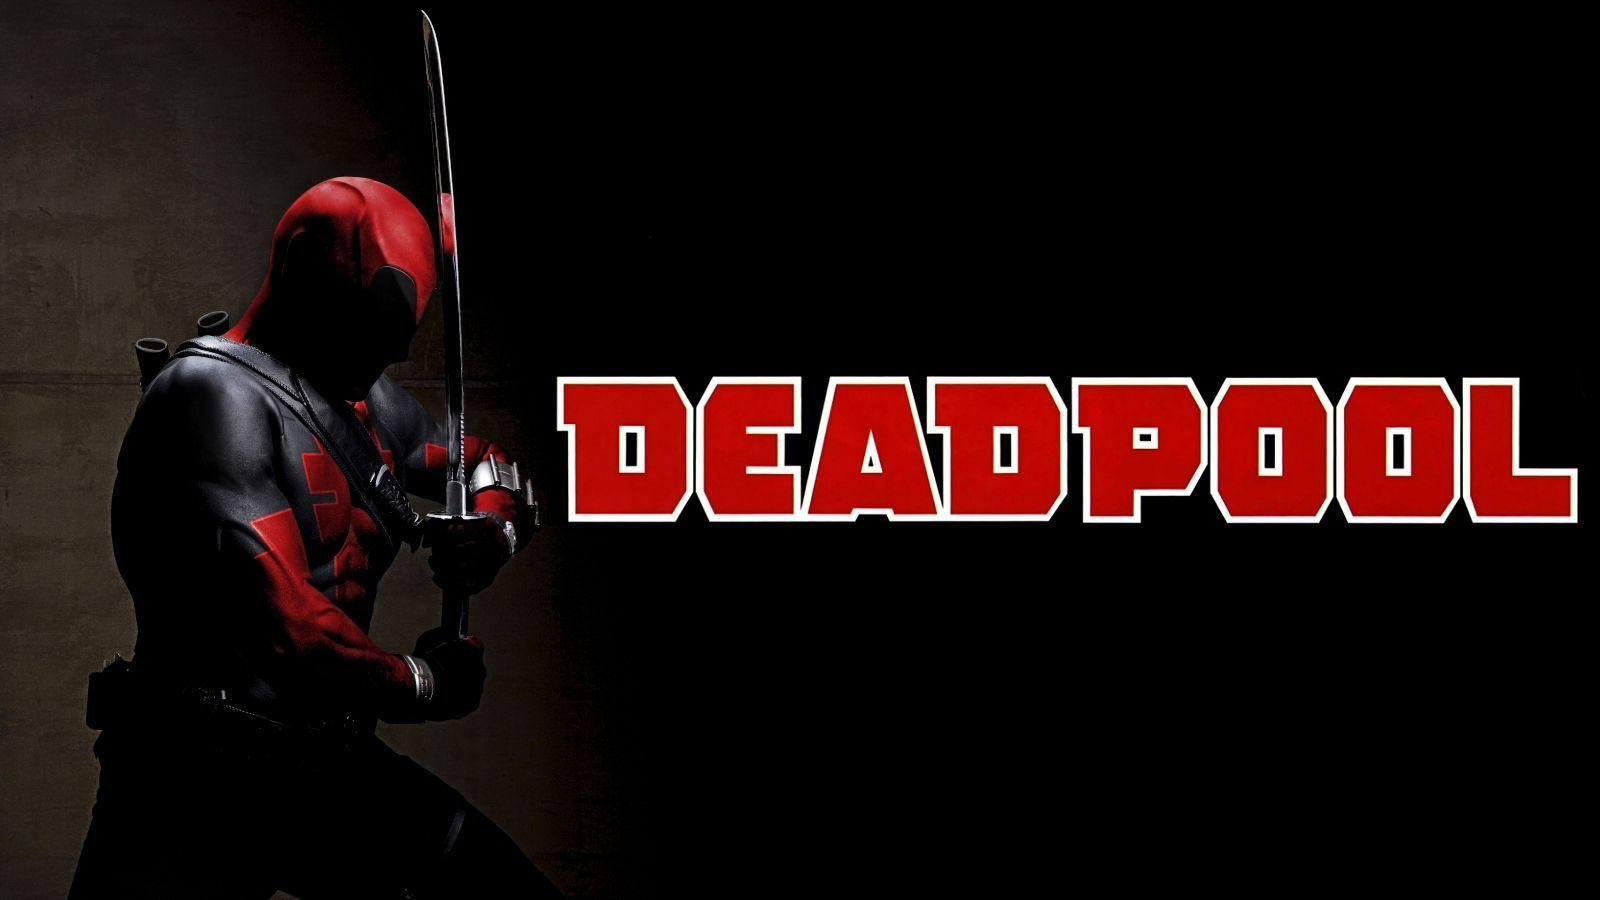 Deadpool Logo Iphone Wallpapers Download Club